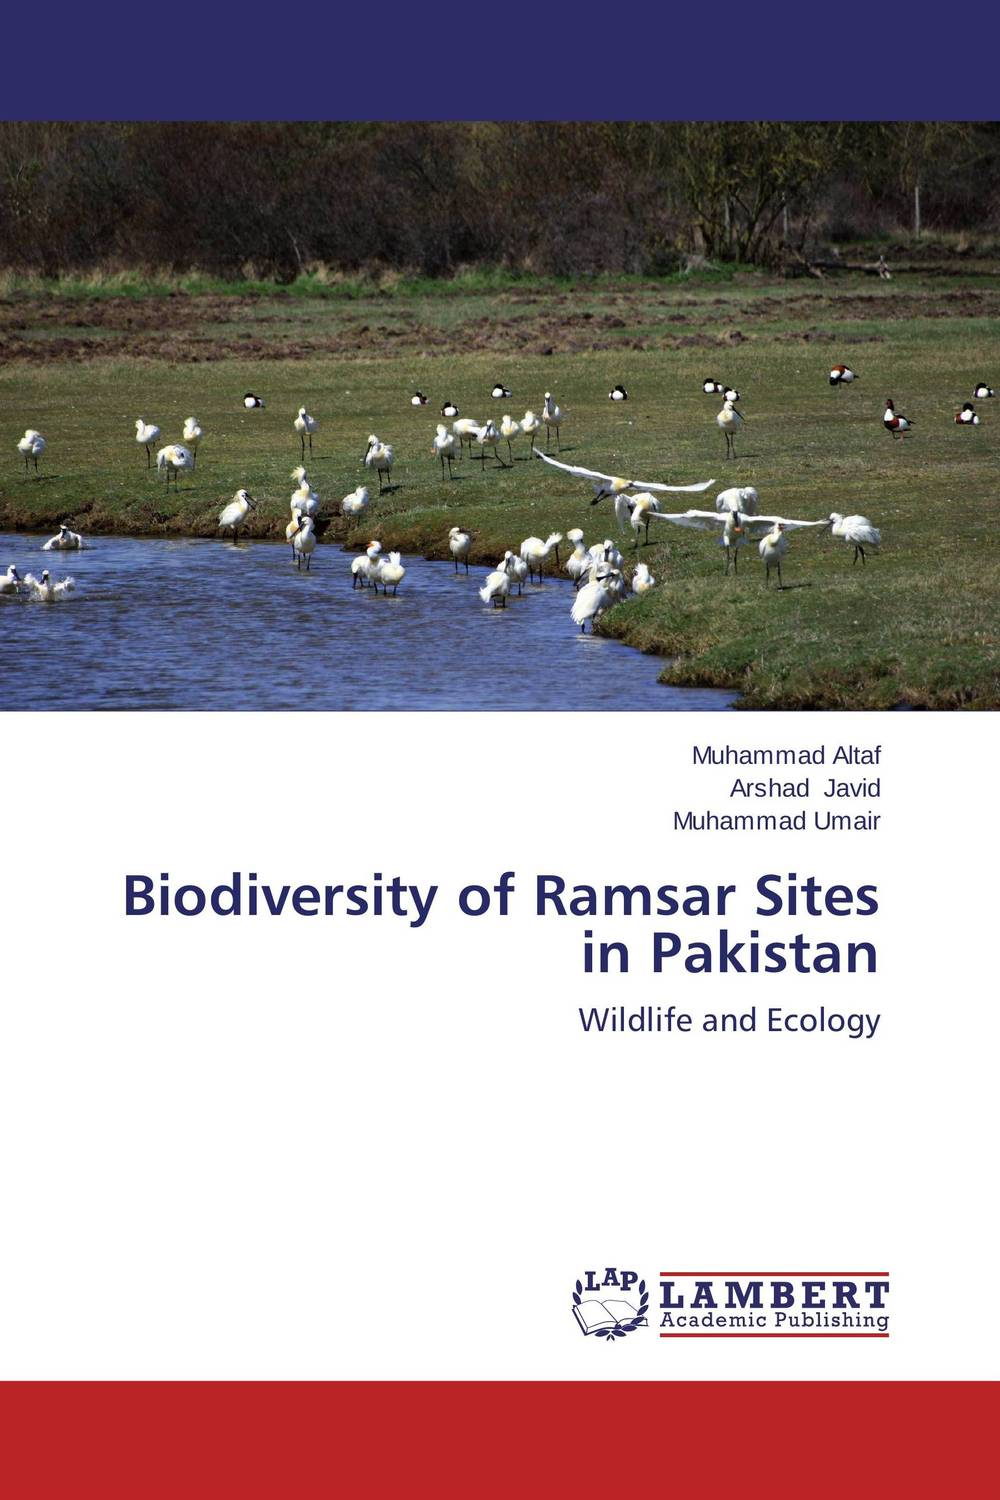 Biodiversity of Ramsar Sites in Pakistan retinopathy among undiagnosed patients of pakistan